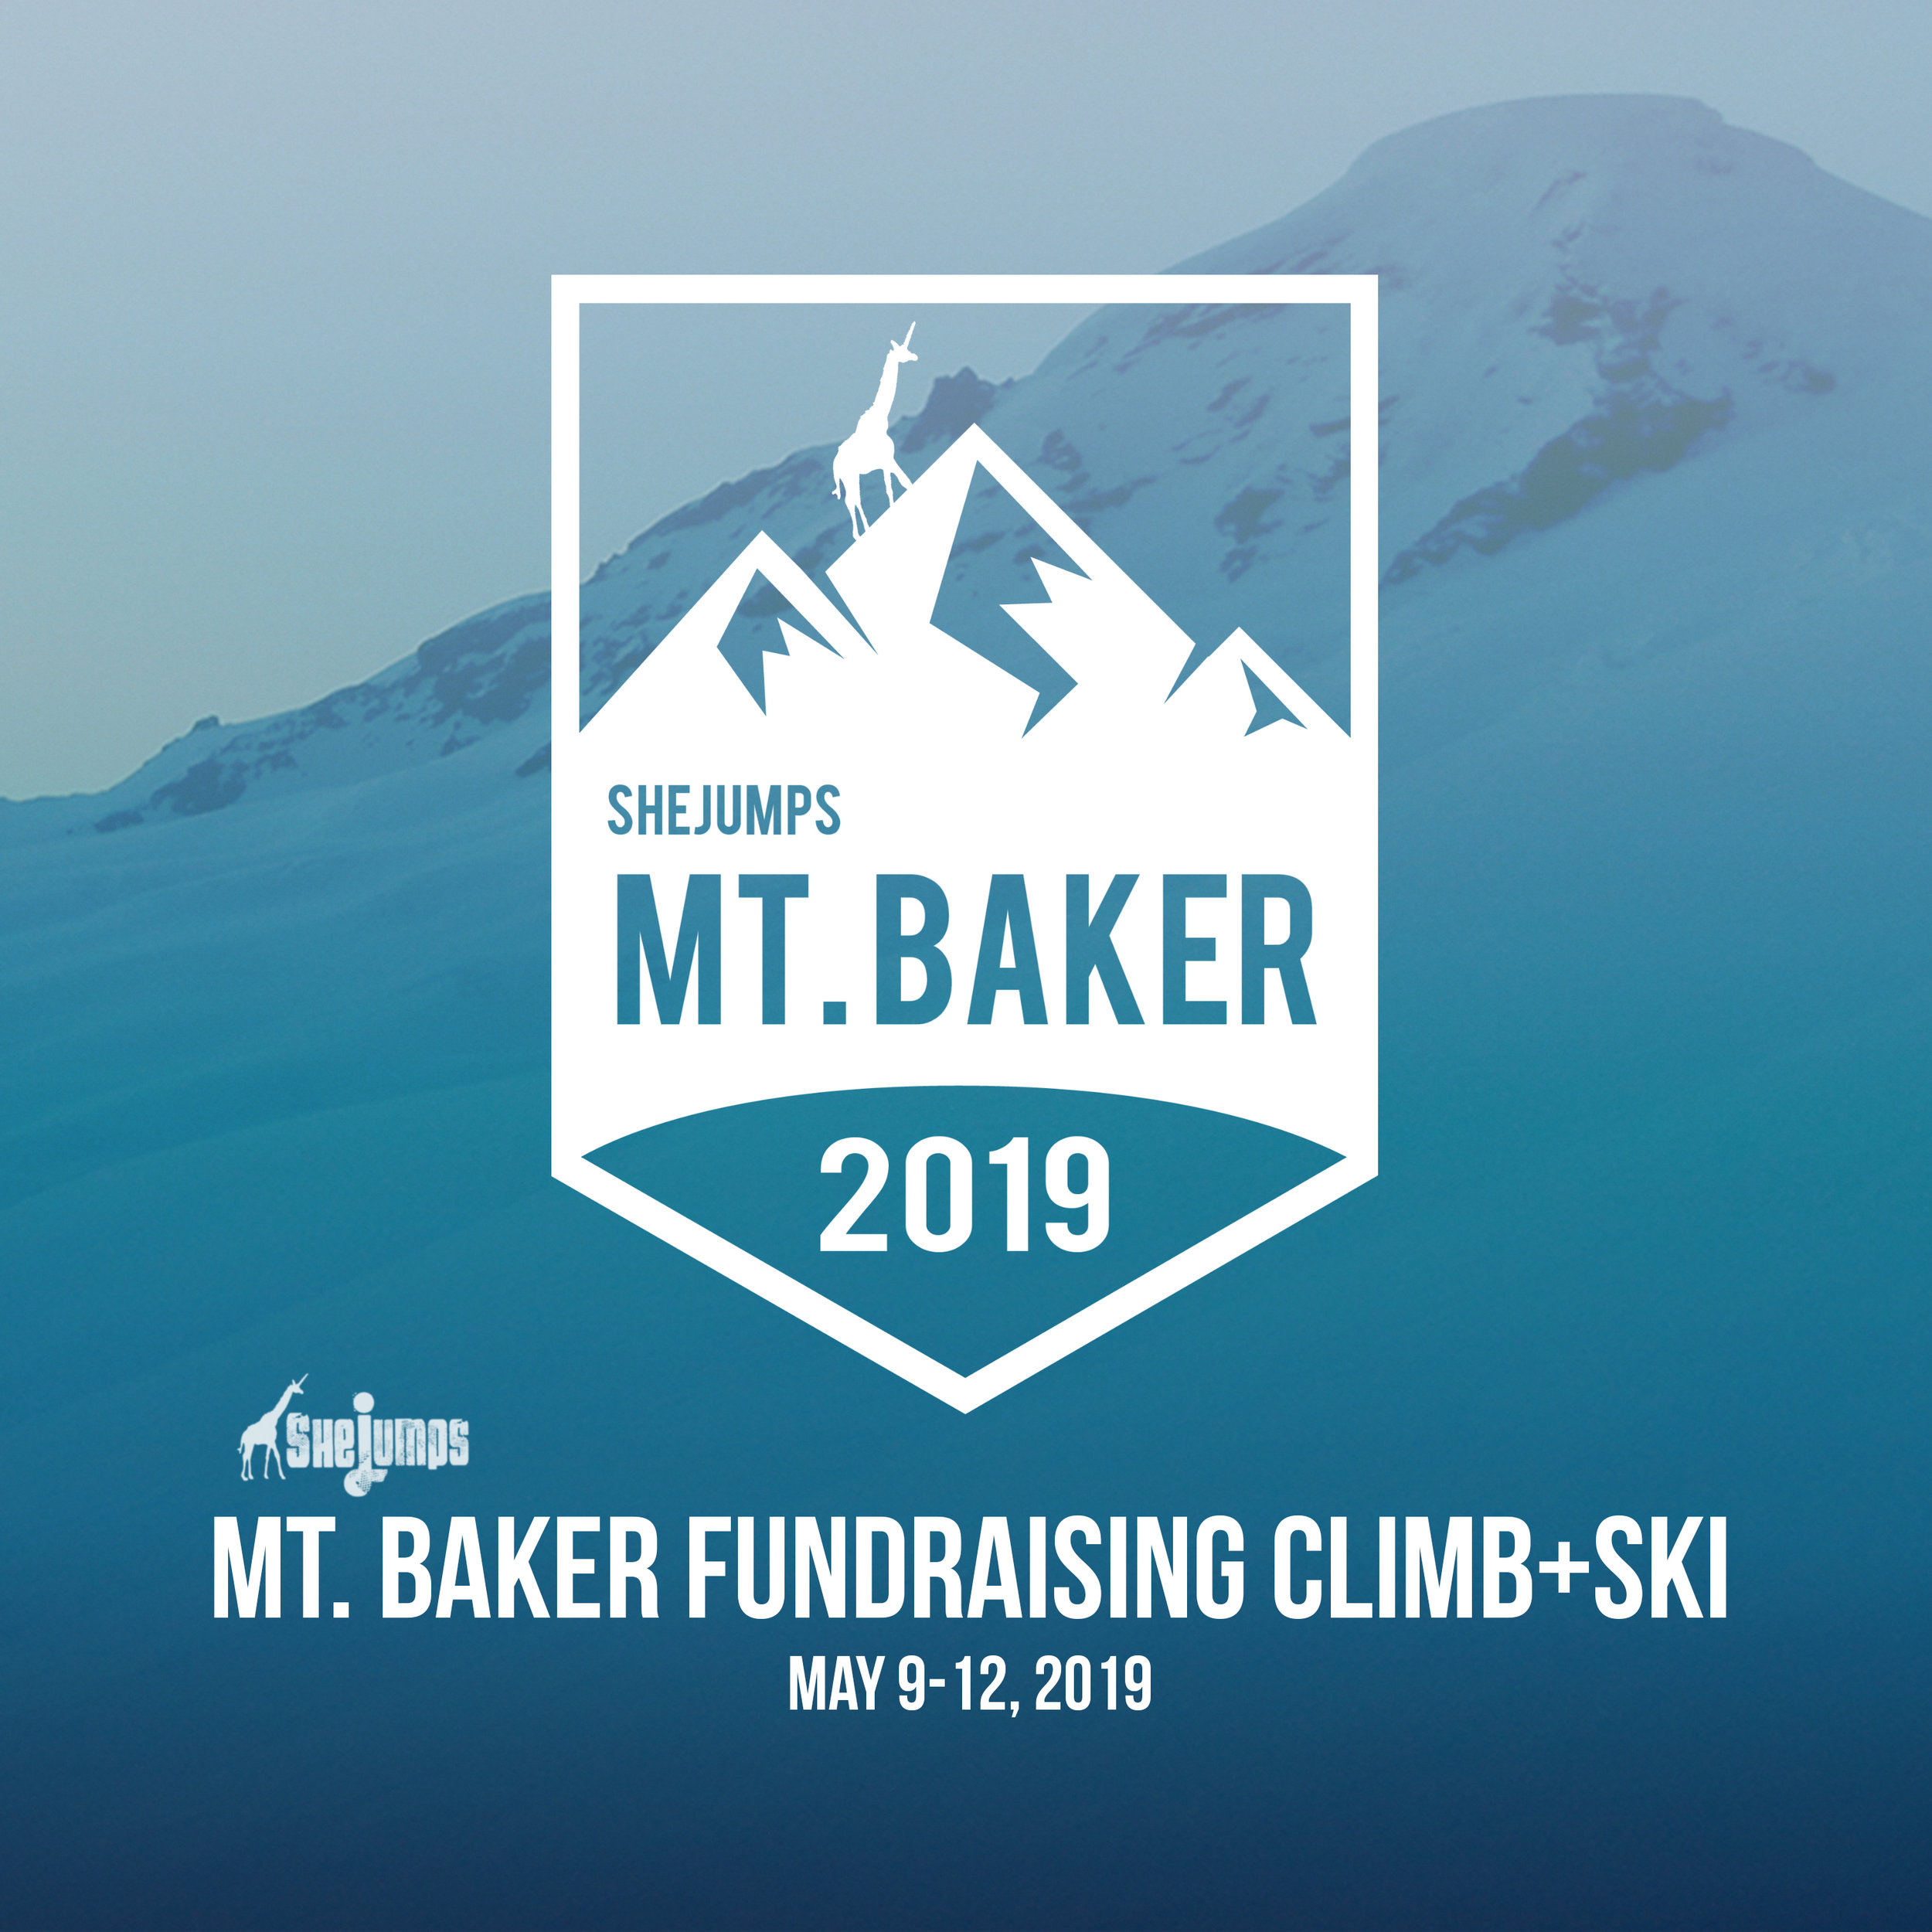 SheJumps Mt. Baker Climb + Ski - Over the winter of 2018-2019, a group of 9 women fundraised $20,000 while training to climb and ski Mt. Baker in the North Cascades of Washington - read the story on my blog! We had a successful summit day on Sunday 5/12/19.The SheJumps Mt. Baker Climb+Ski contributed to the nonprofit's Wild Skills program. Wild Skills youth events teach young girls the survival and technical skills they need for outdoor adventuring. These skills can be applied in any season and include first aid, navigation, leave no trace and shelter building. The events encourage girls to learn new skills, take on challenges and think creatively, which develops perseverance and fosters confidence. The funds raised from this climb will help further this vision.THANK YOU to all friends and family who donated!